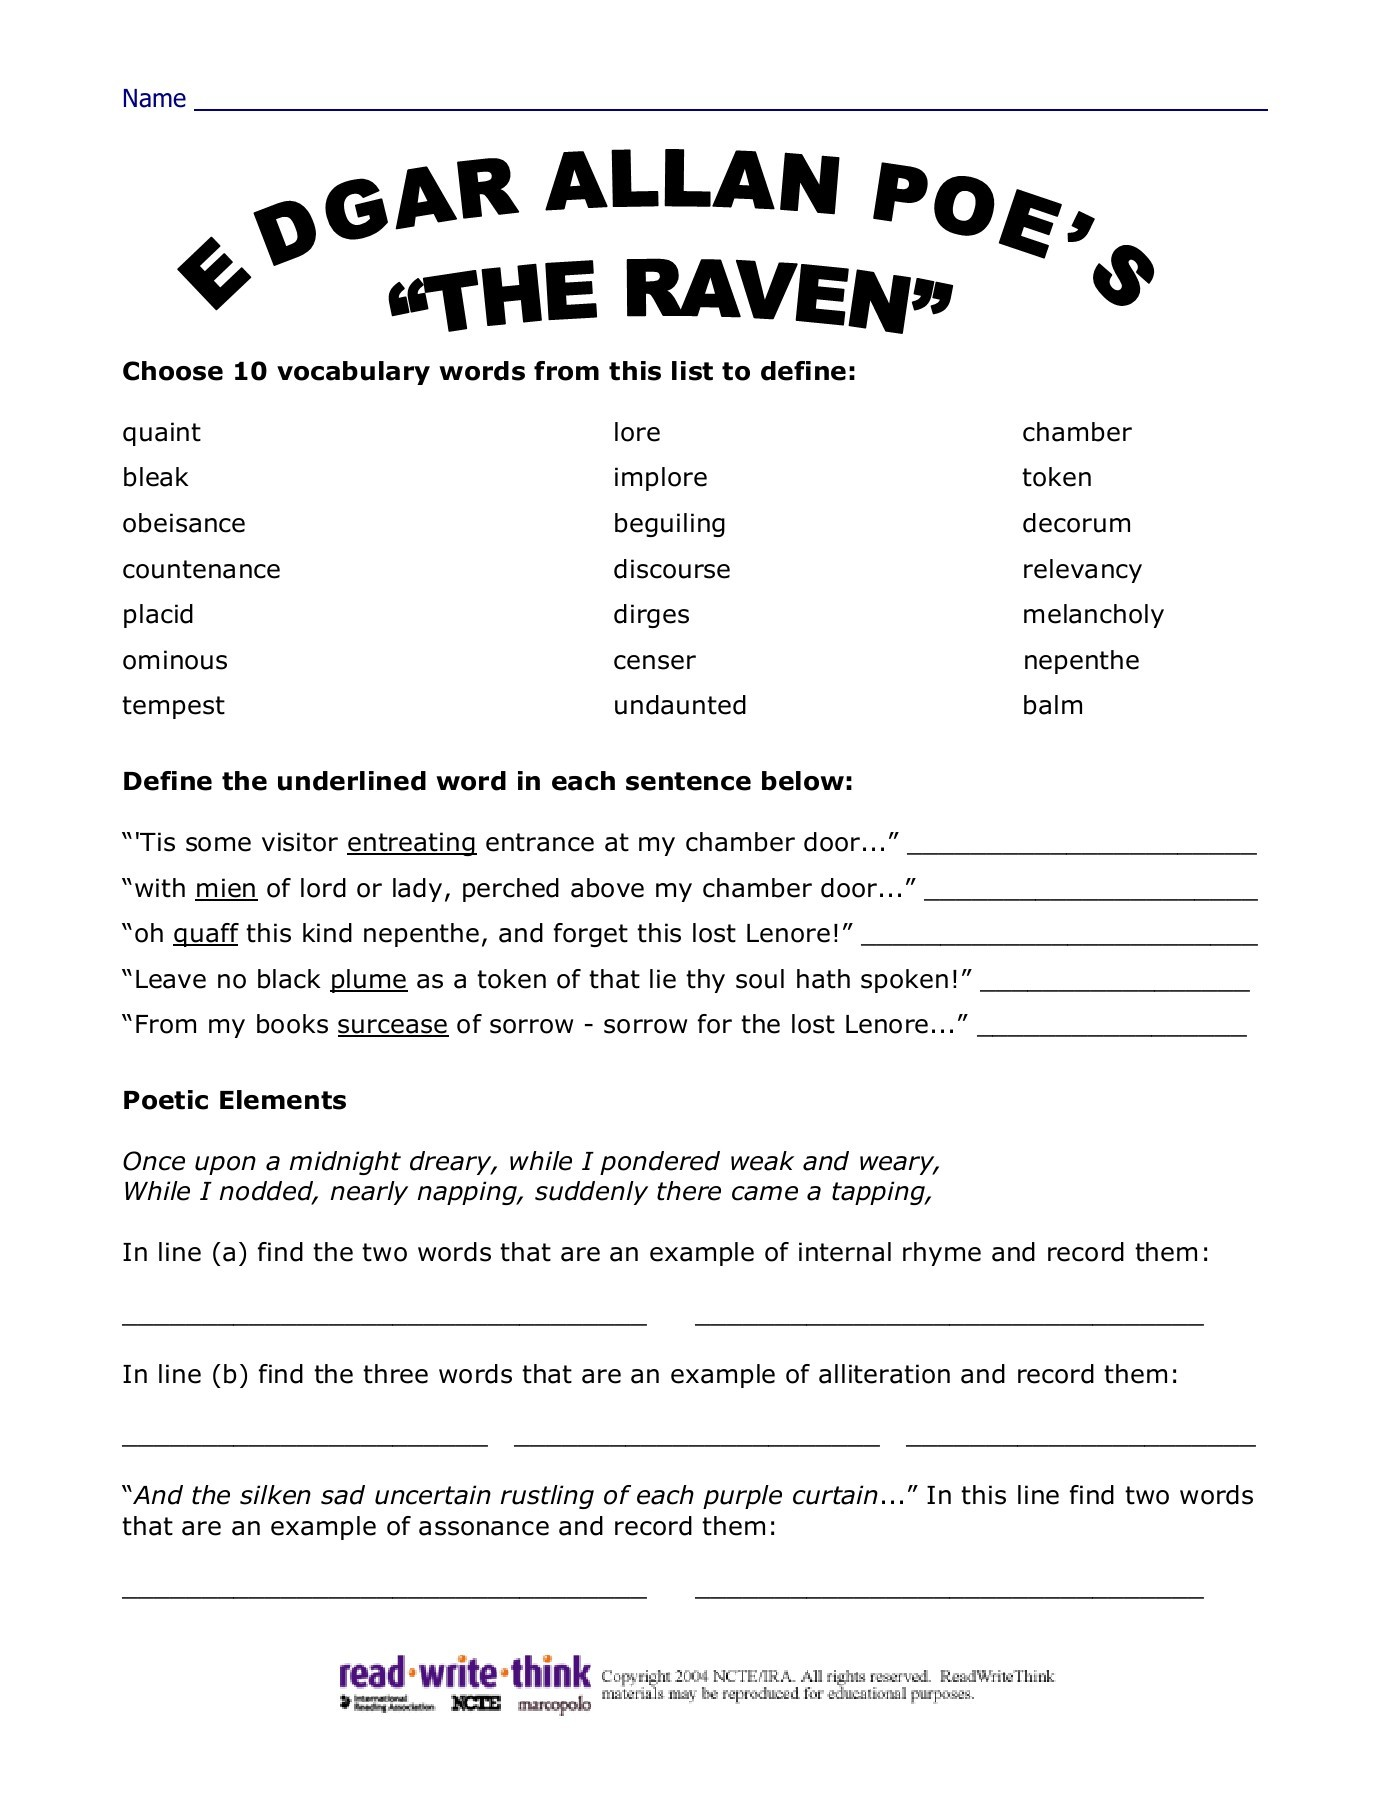 Edgar Allan Poes The Raven Worksheet Answers Read Write Think